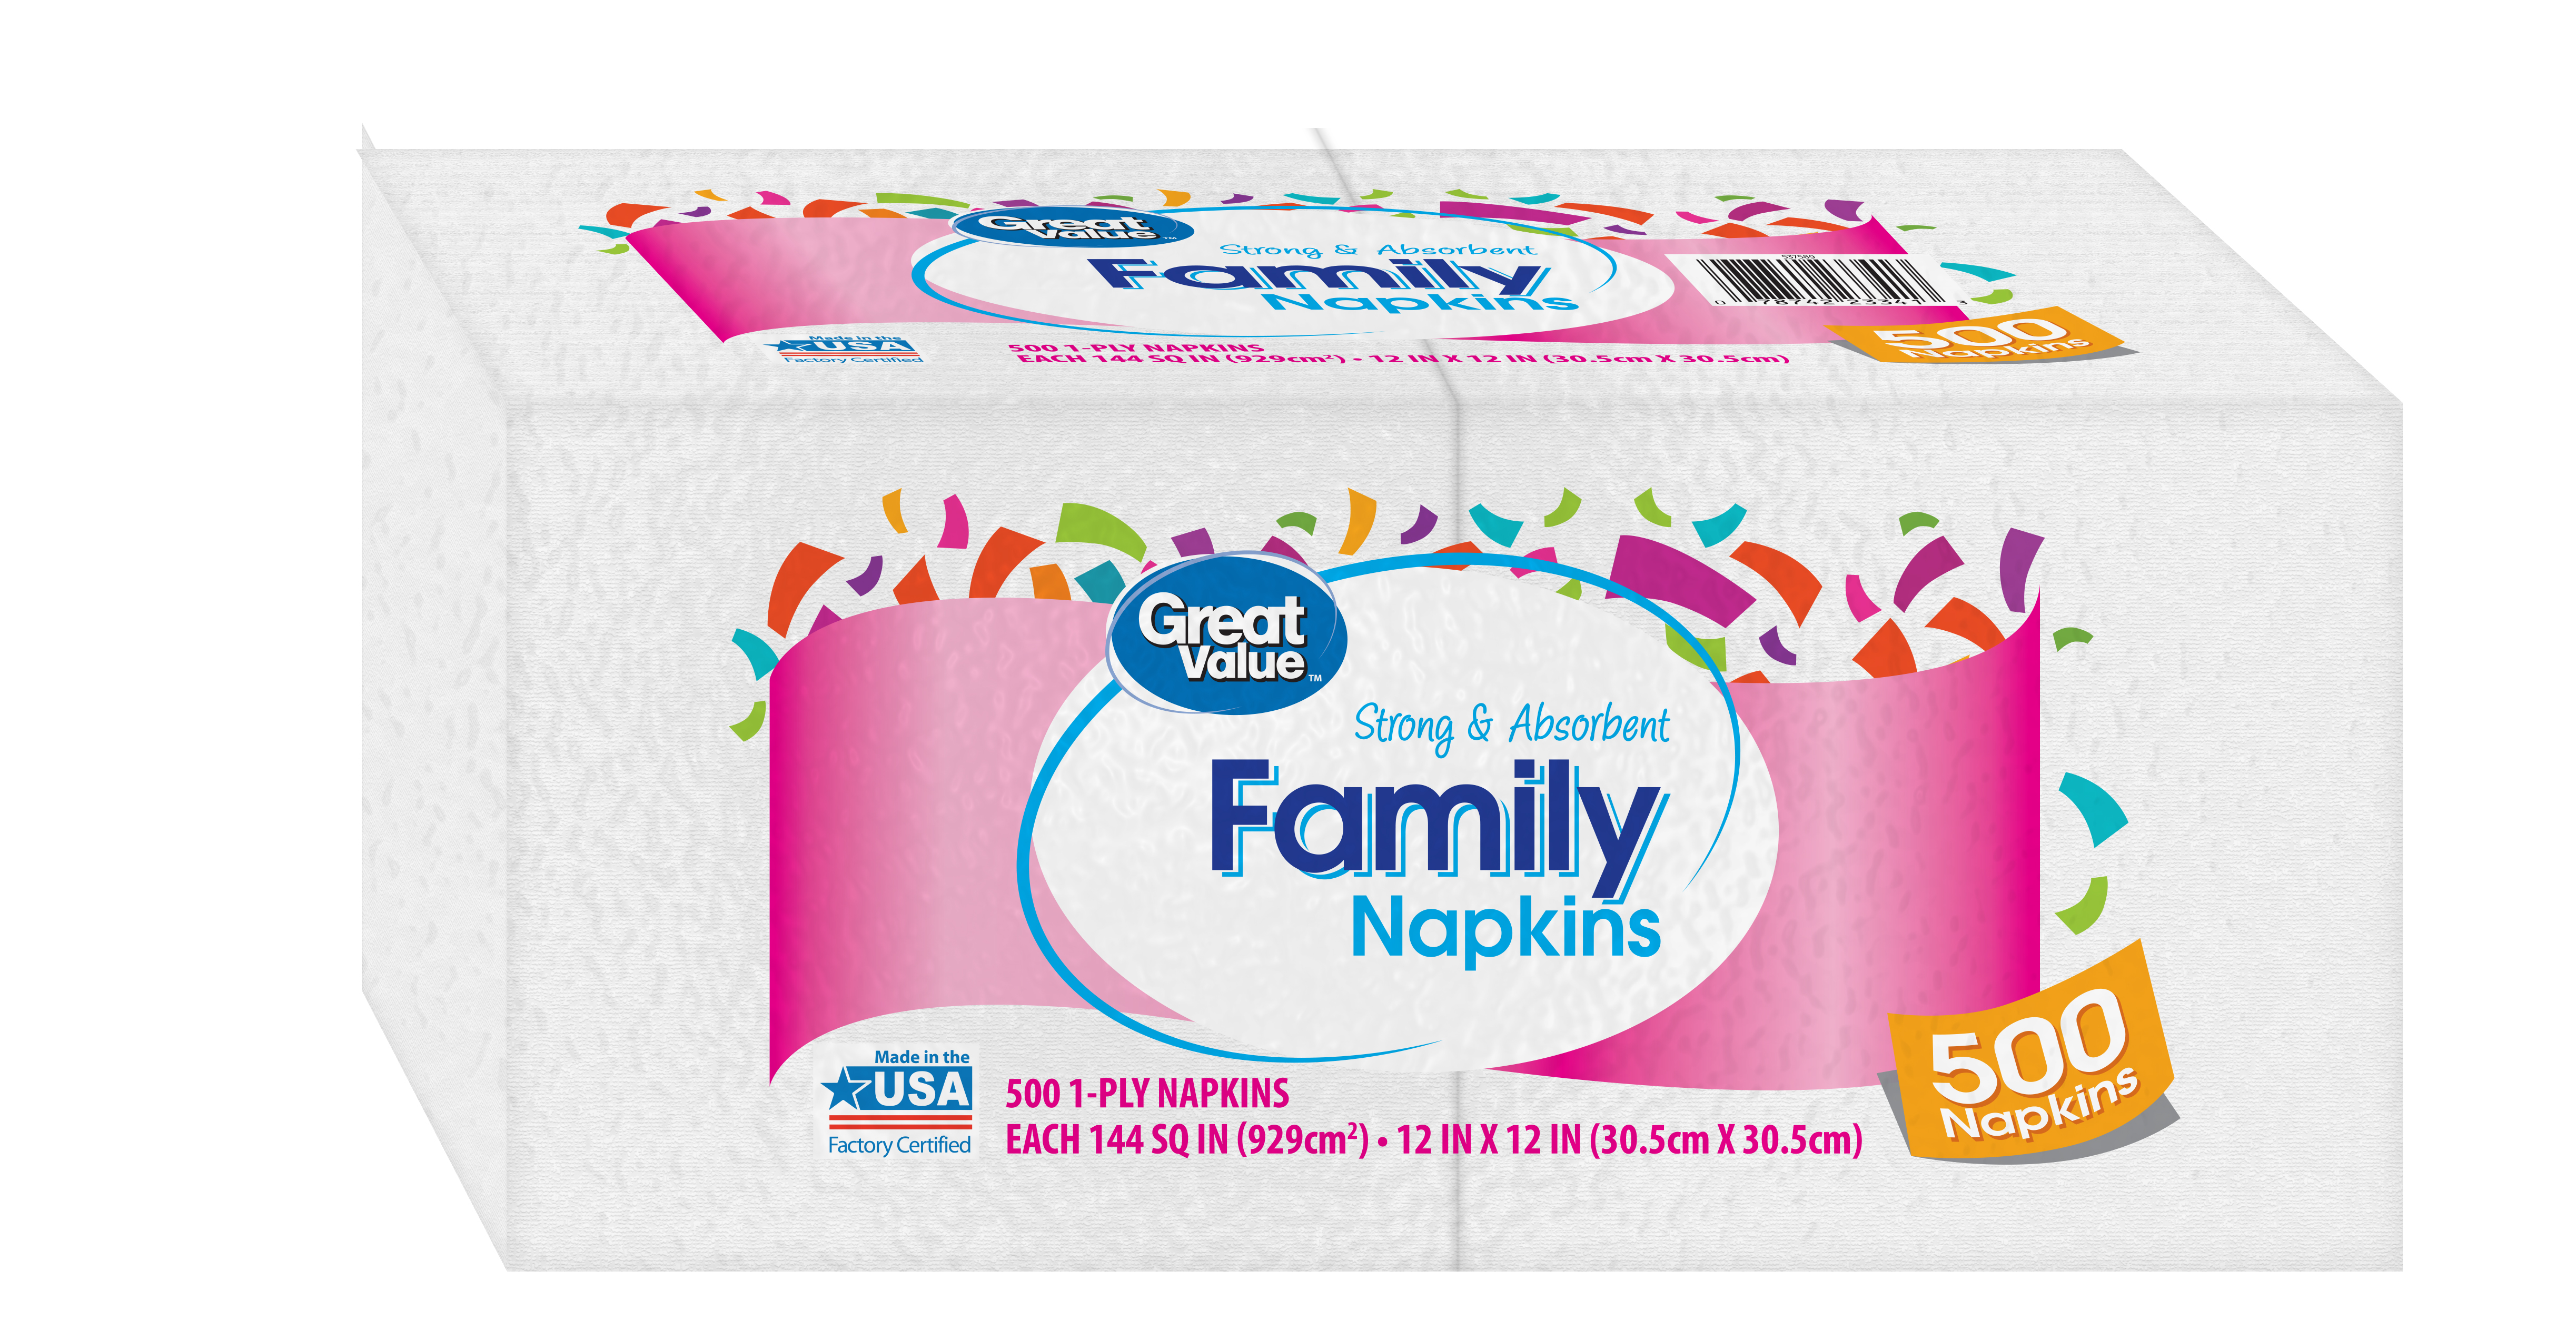 (2 pack) Great Value Family Napkins, White, 500 Napkins (1000 Napkins Total)